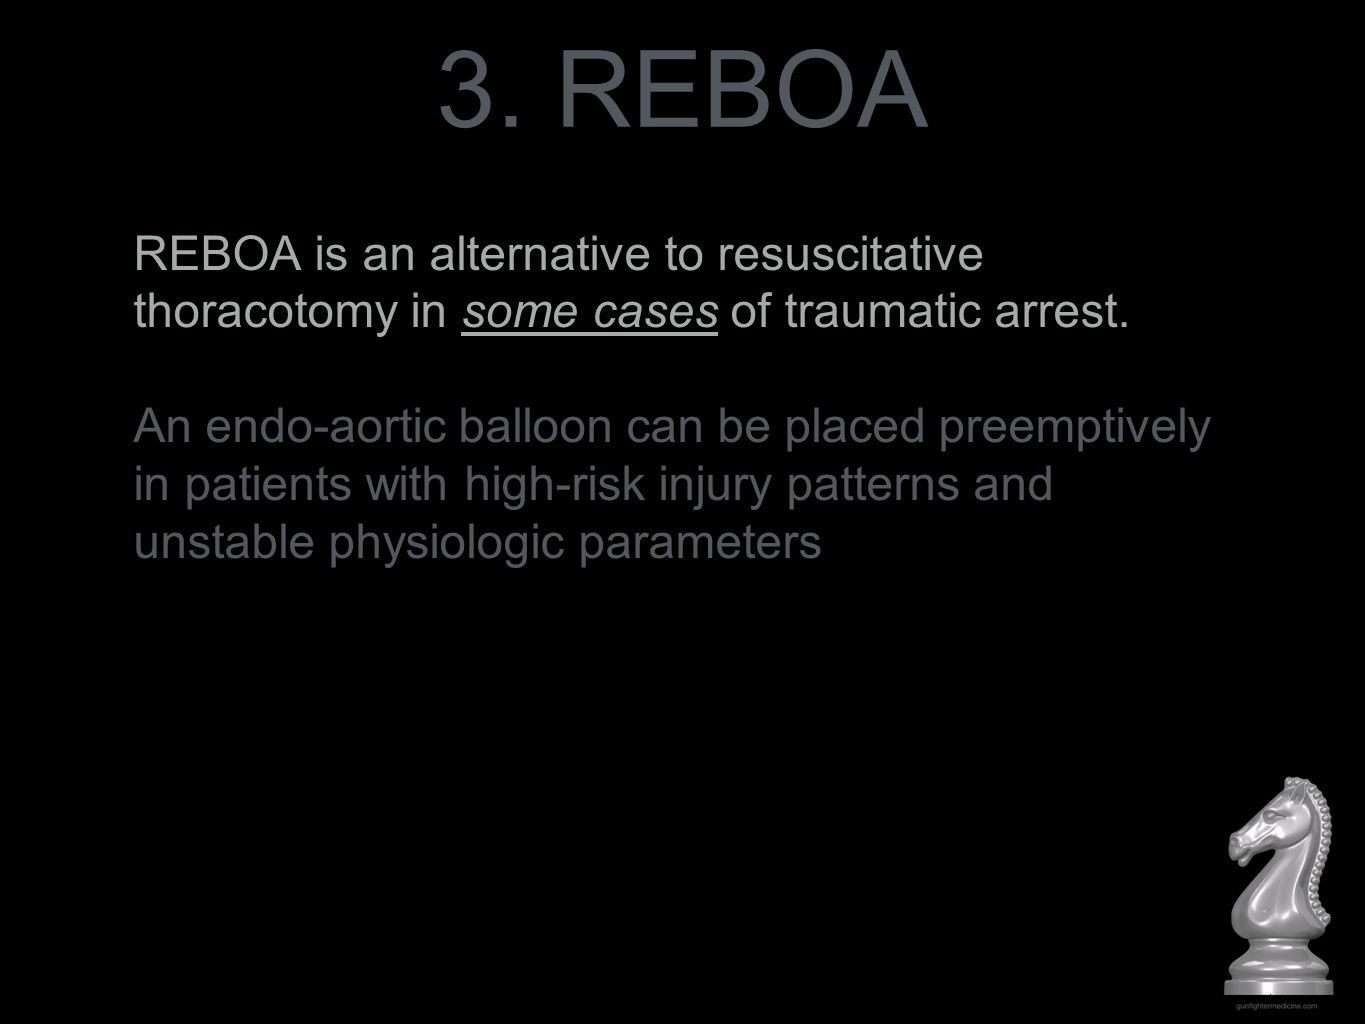 3. REBOA REBOA is an alternative to resuscitative thoracotomy in some cases of traumatic arrest. An endo-aortic balloon can be placed preemptively in